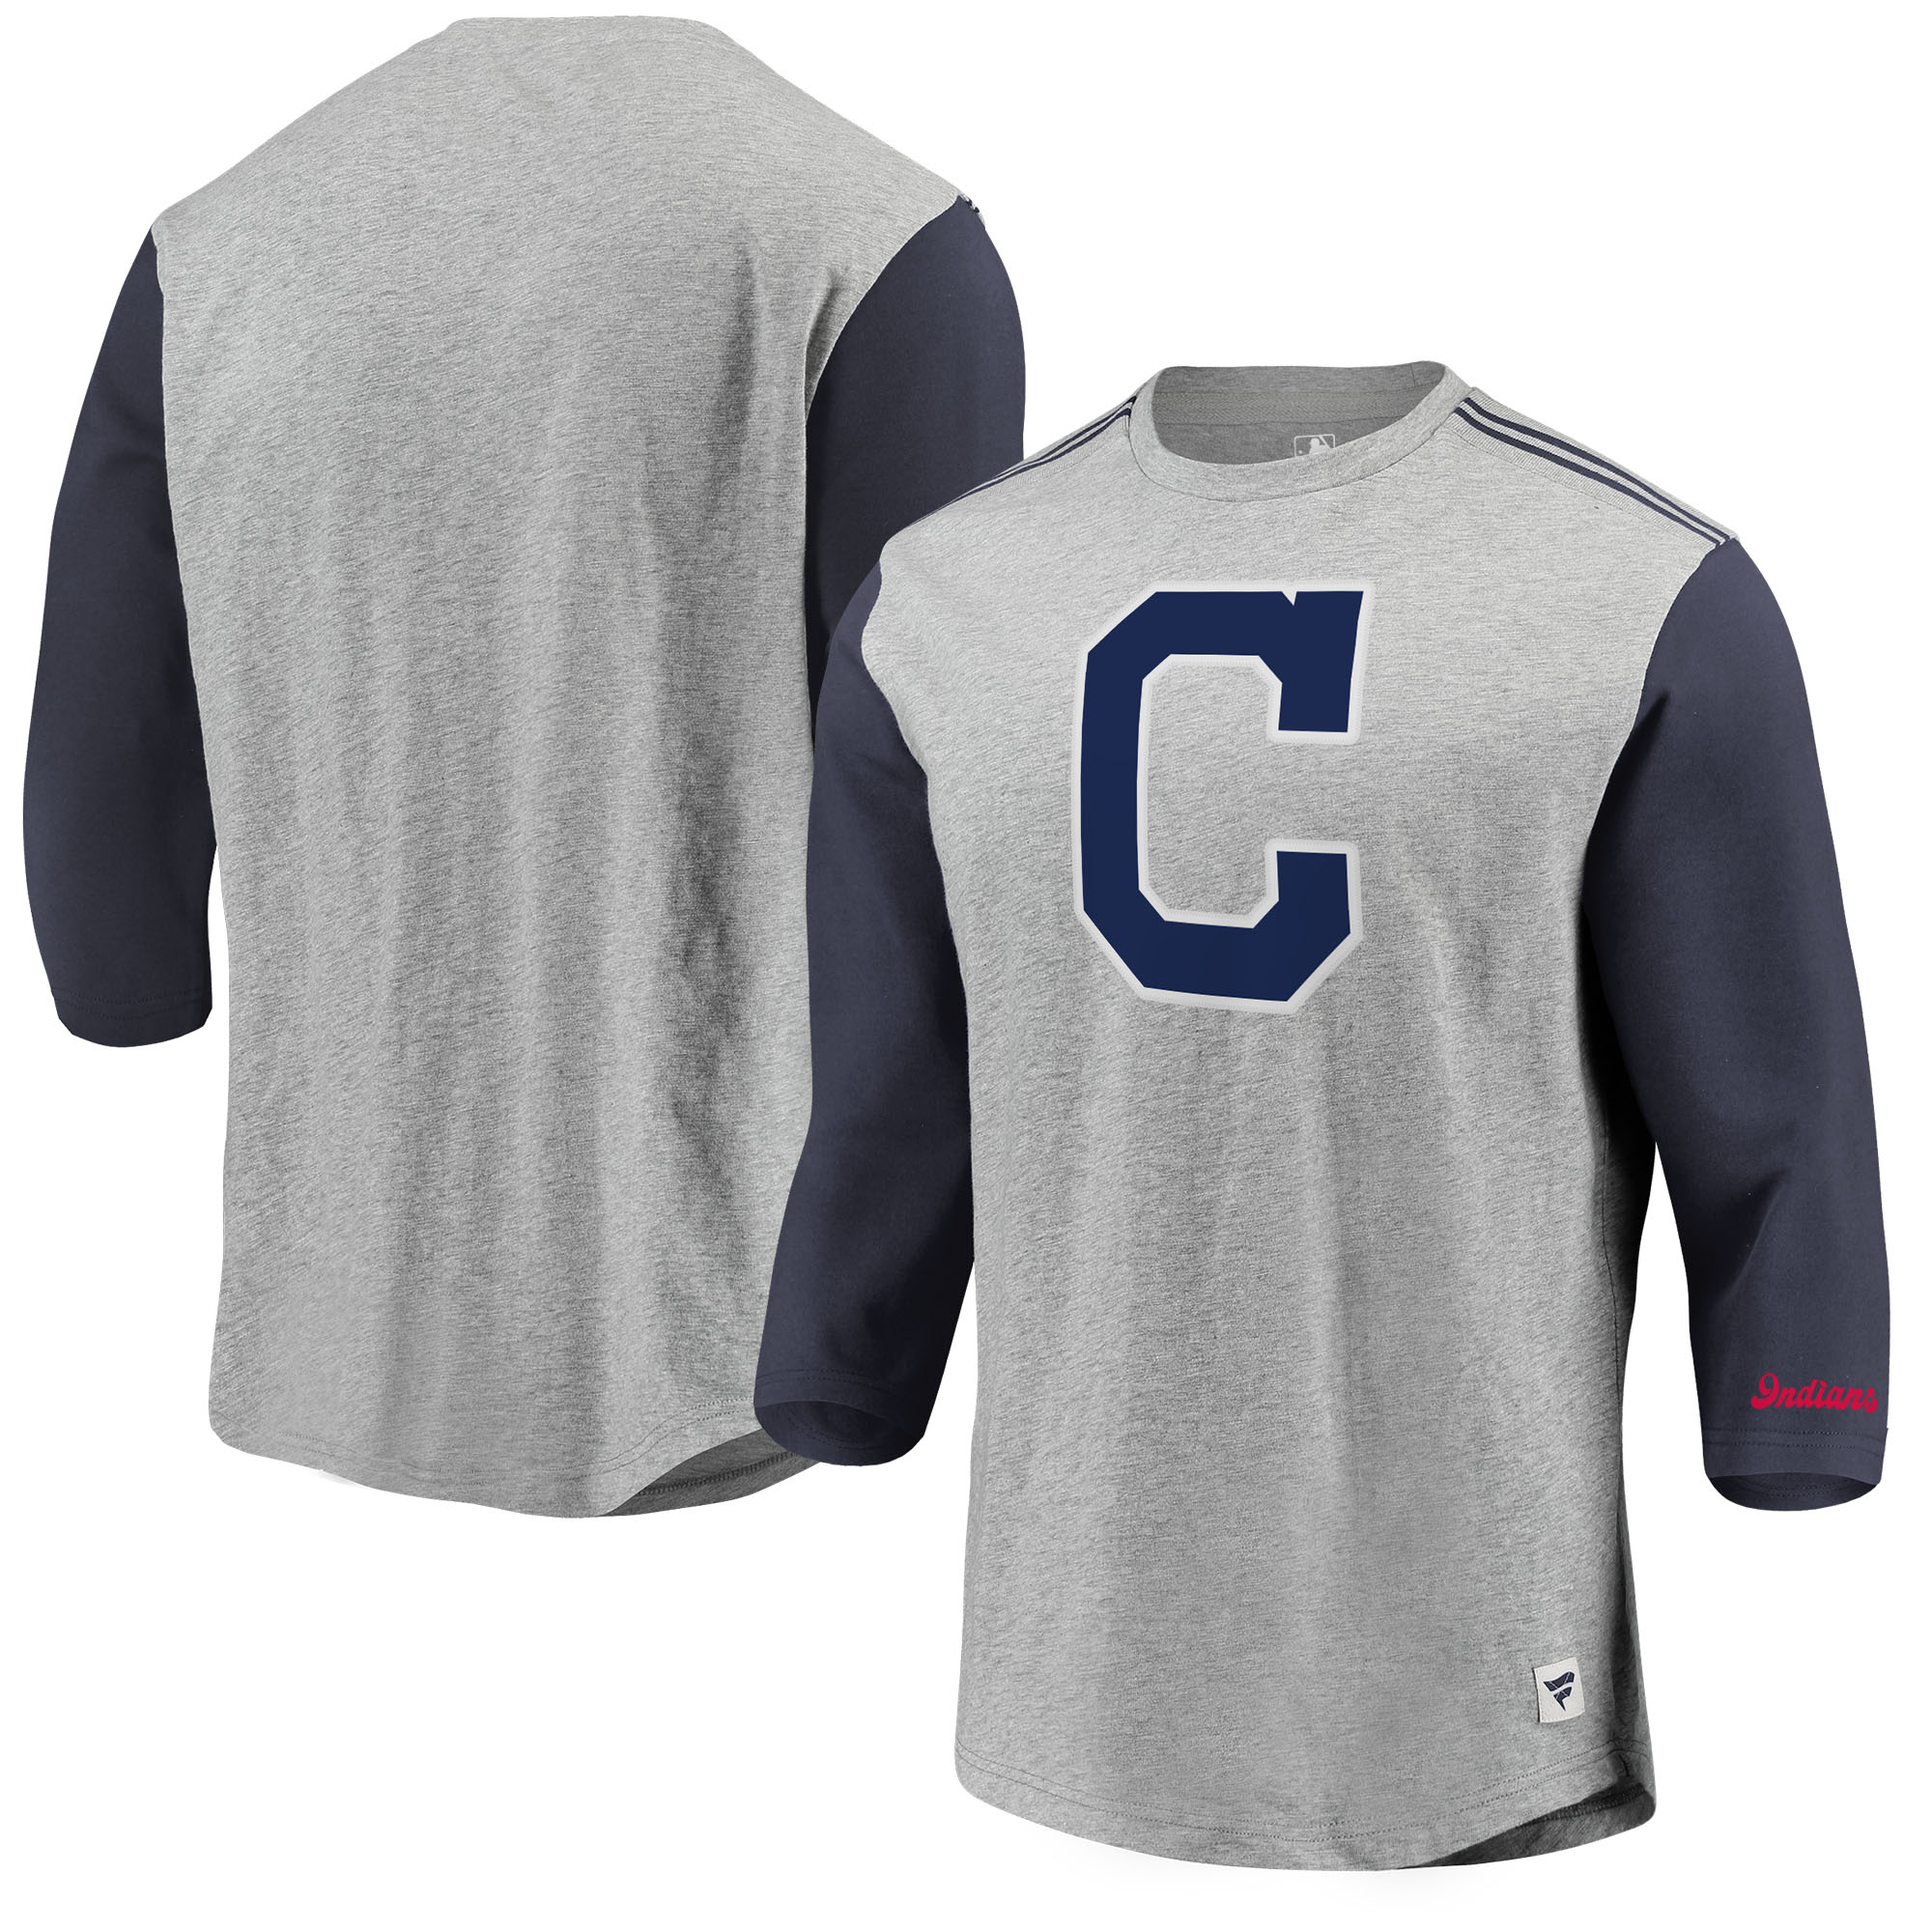 Cleveland Indians Fanatics Branded MLB Heritage Crew Neck 3/4-Sleeve T-Shirt - Heathered Gray/Navy